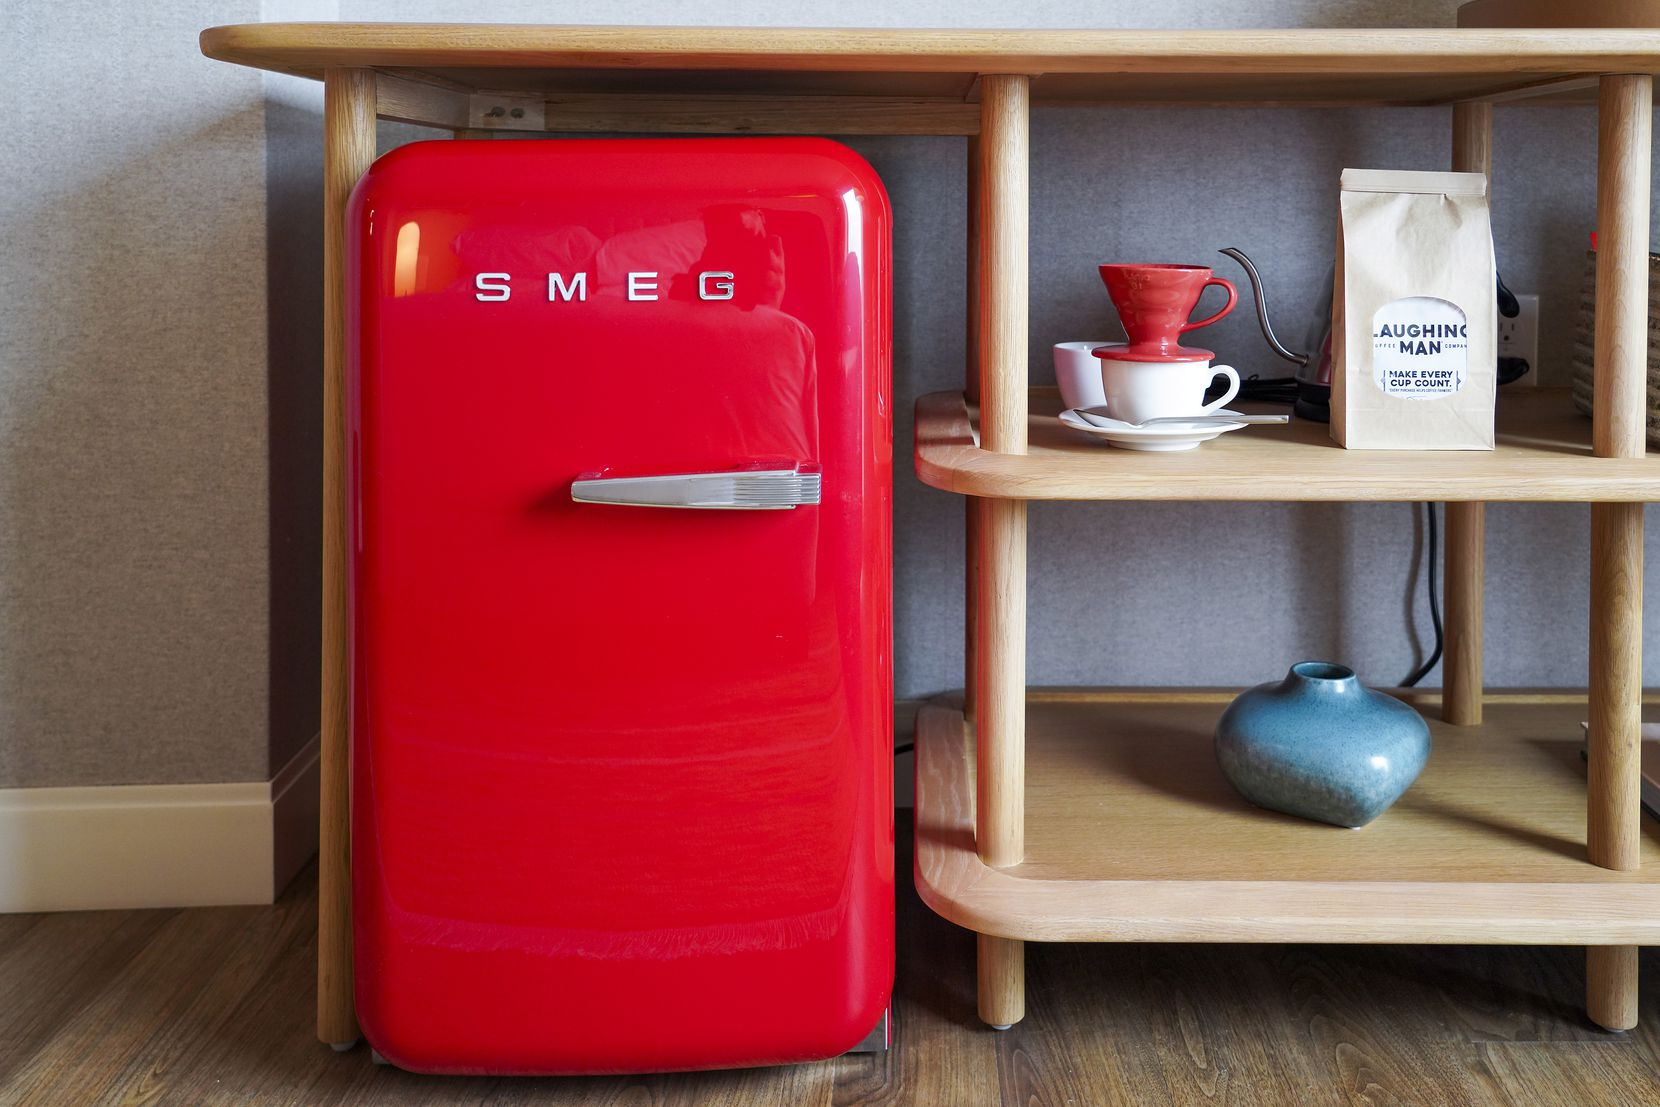 Rooms have a SMEG mini-fridge. Rooms also come with a yoga mat.